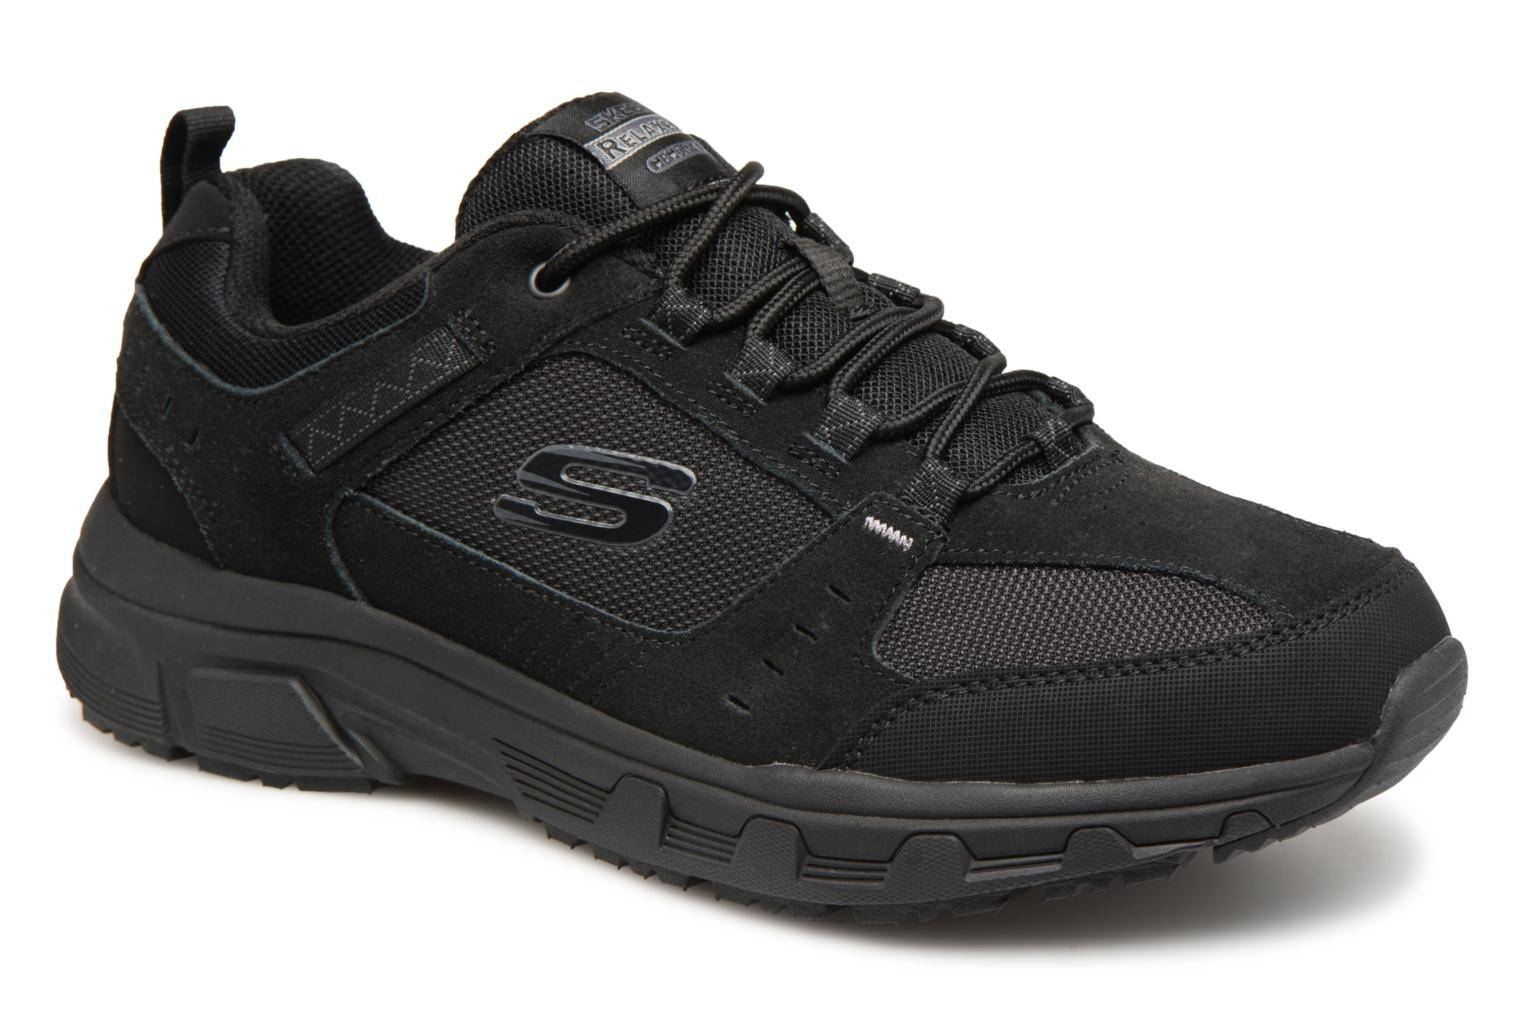 Skechers Chaussures de sport - Skechers - Oak Canyon